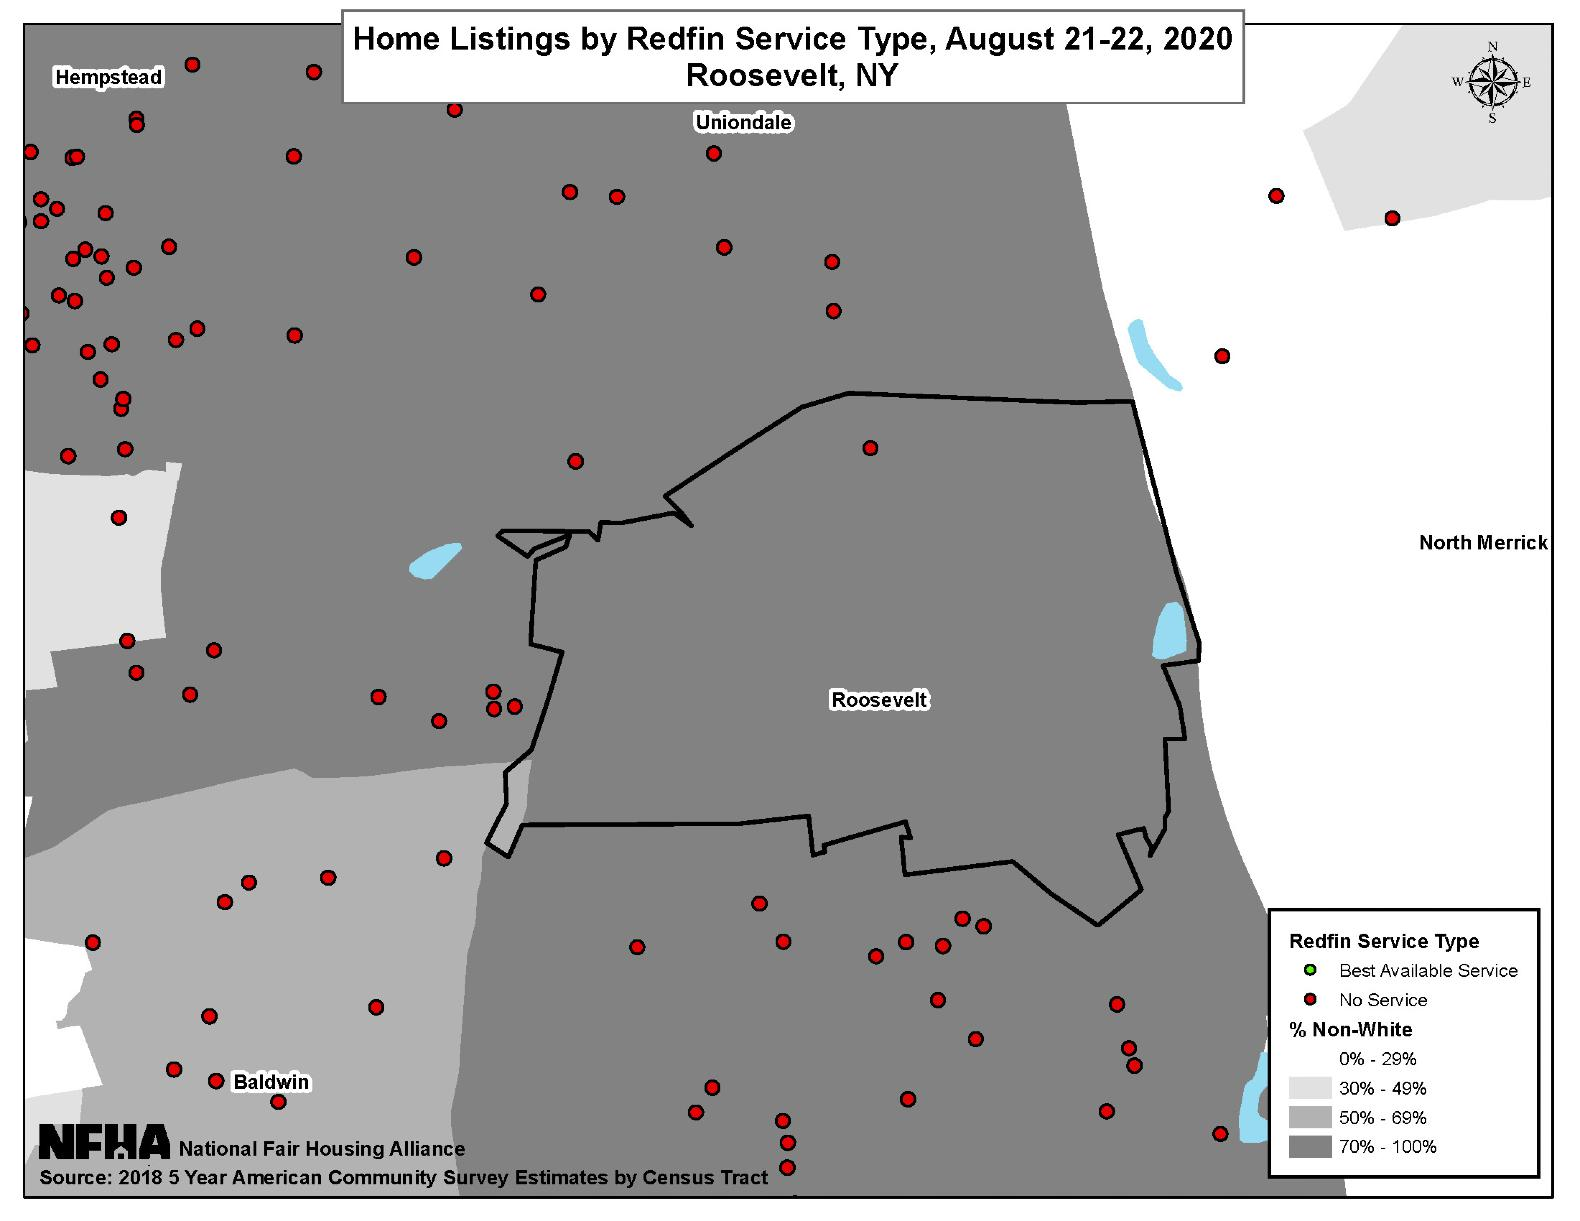 Home Listings by Redfin Service Type, Roosevelt, NY August 21-22, 2020